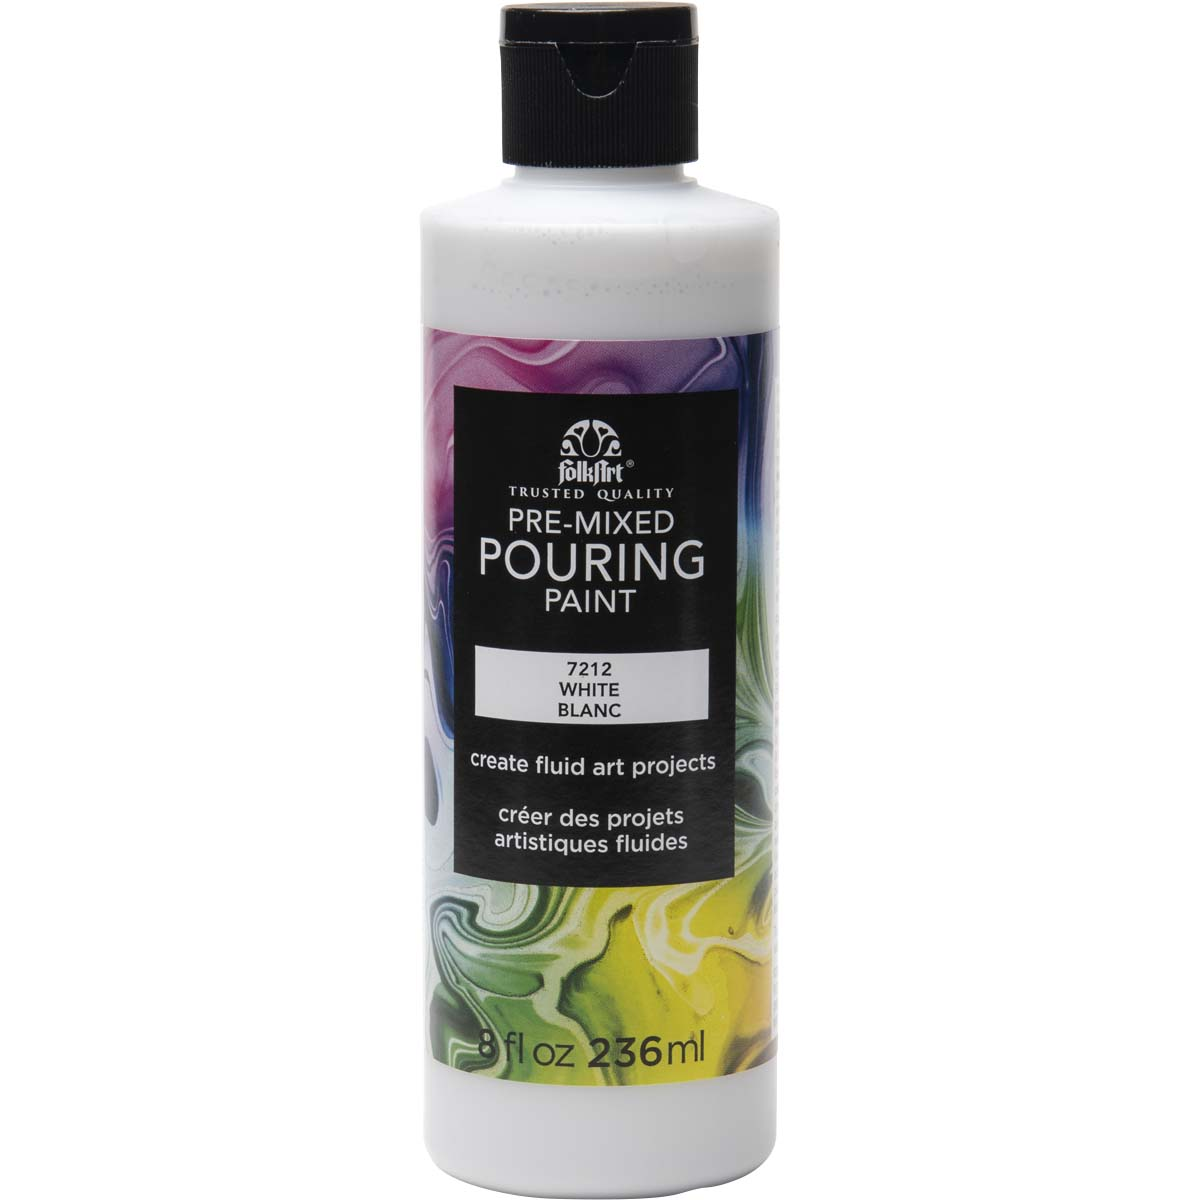 FolkArt ® Pre-mixed Pouring Paint - White, 8 oz. - 7212